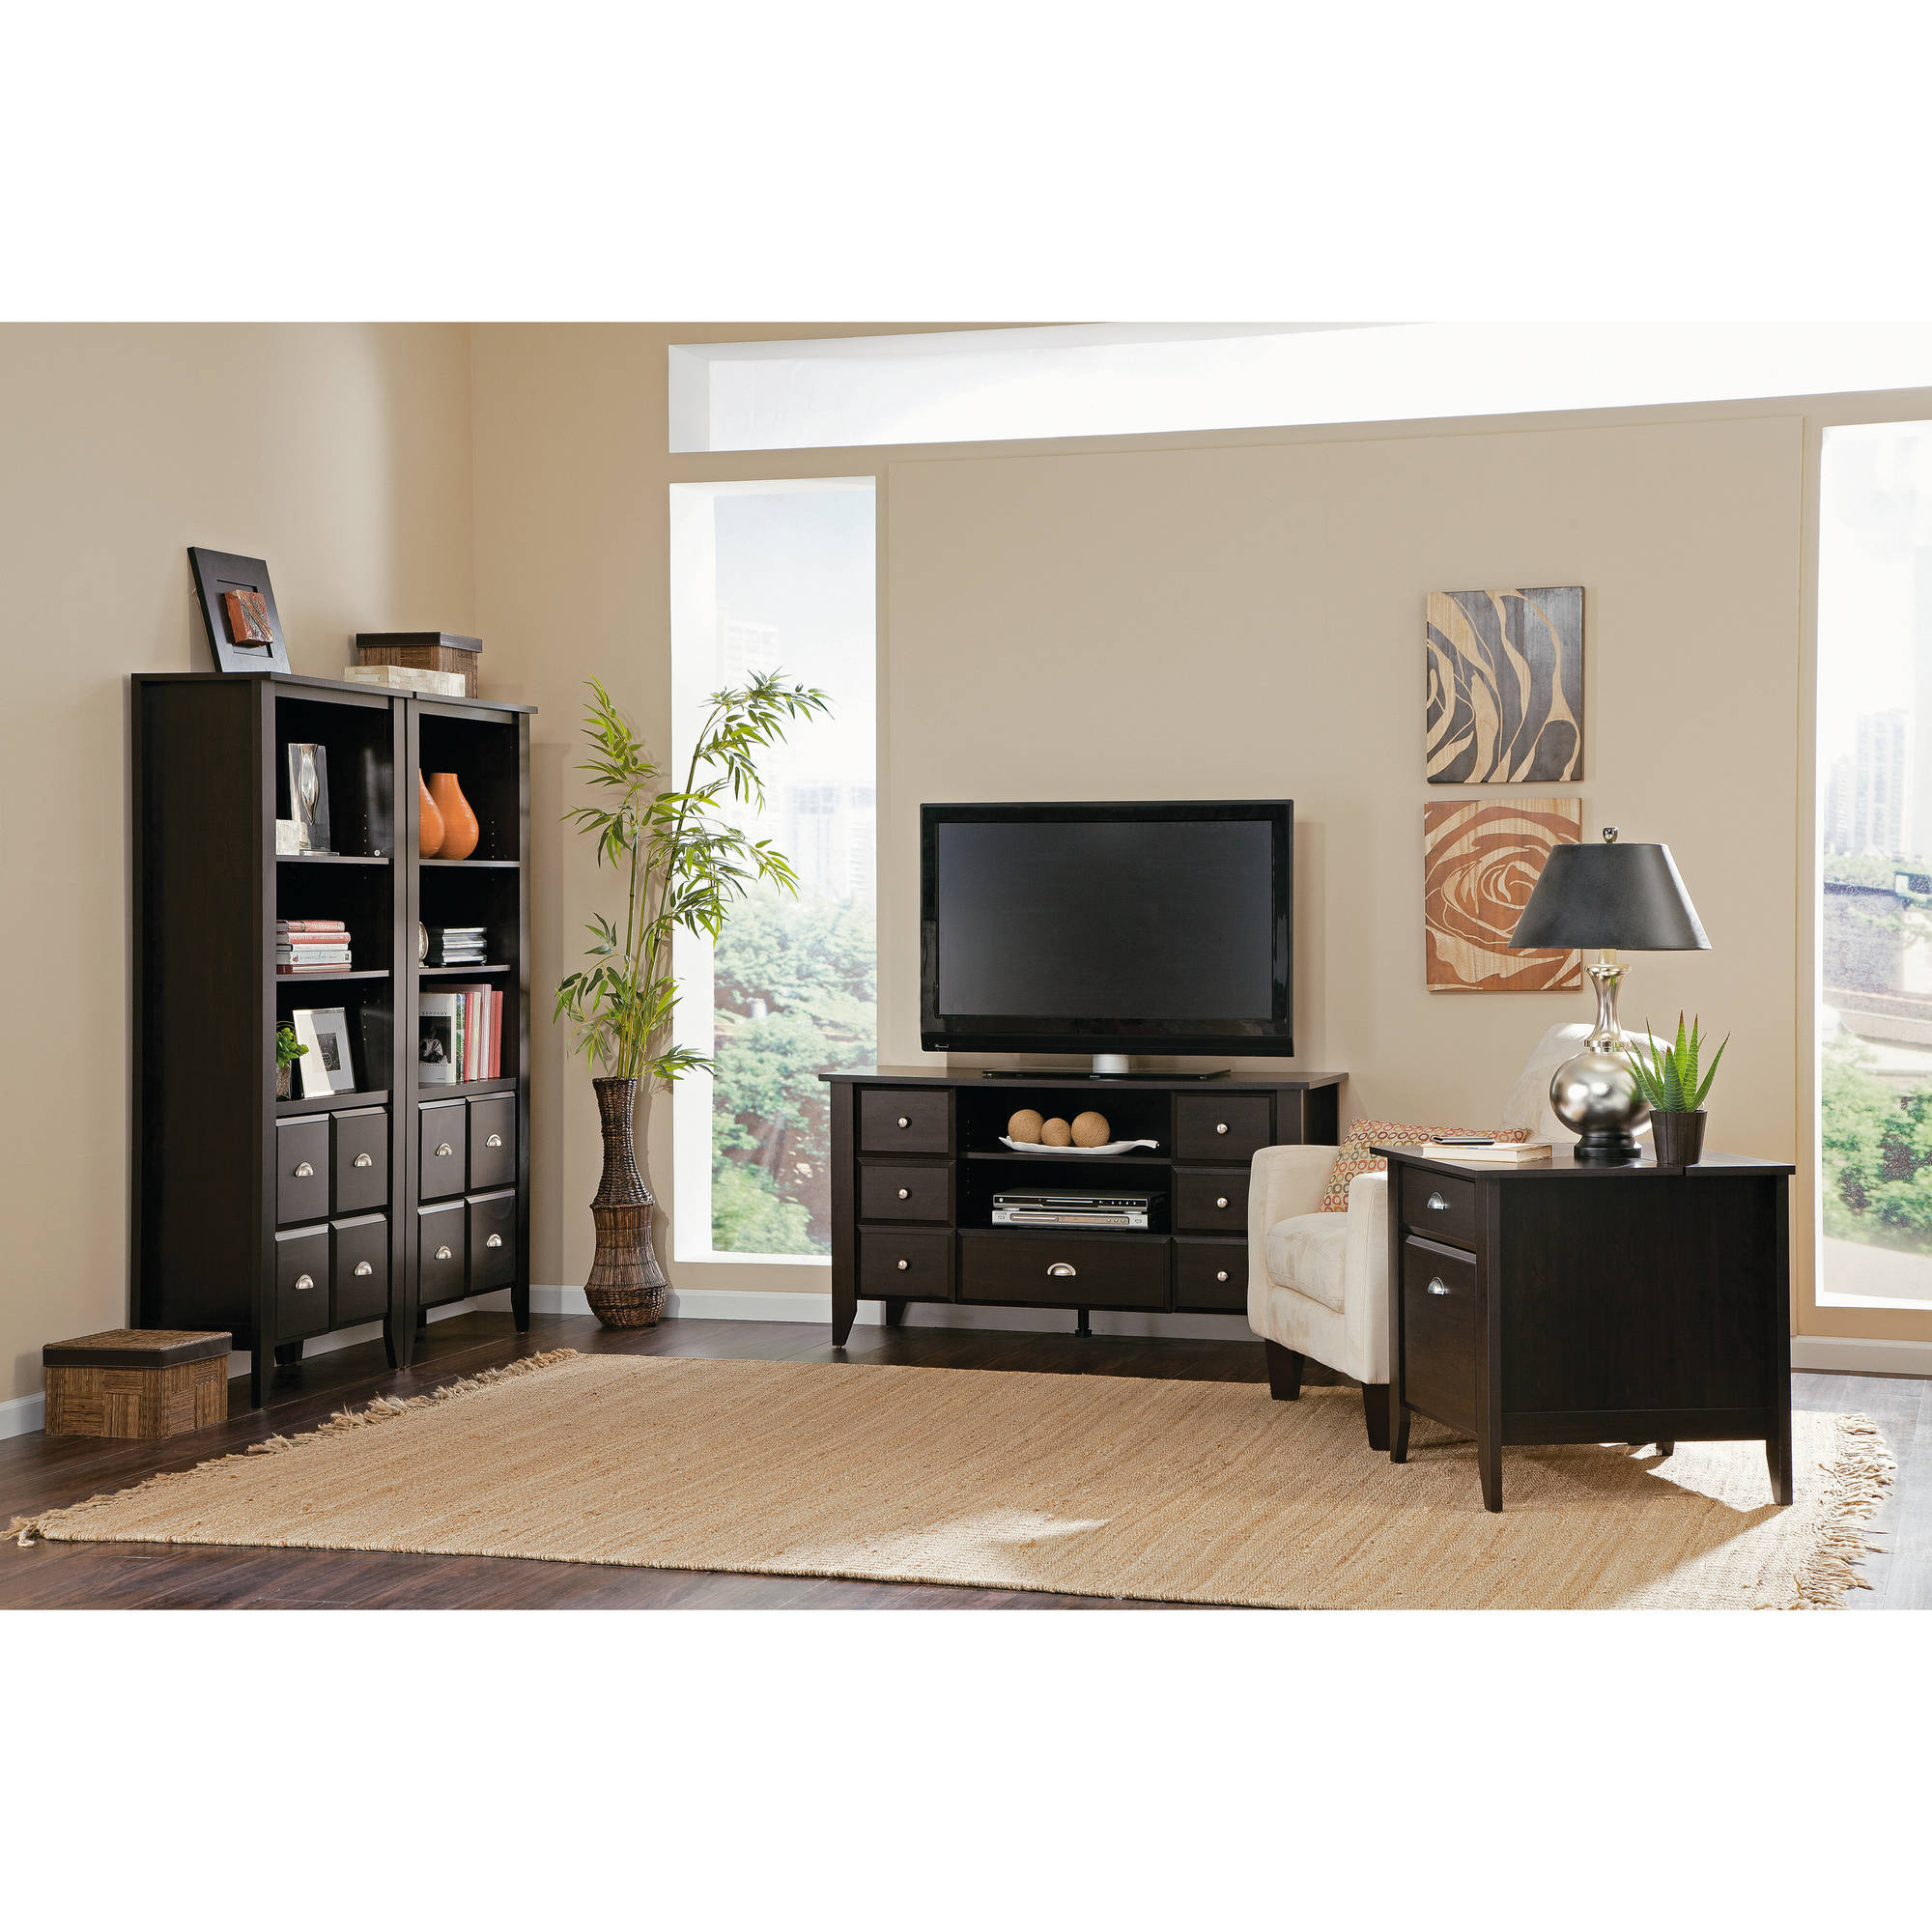 Sauder Shoal Creek Home Entertainment And Office Furniture